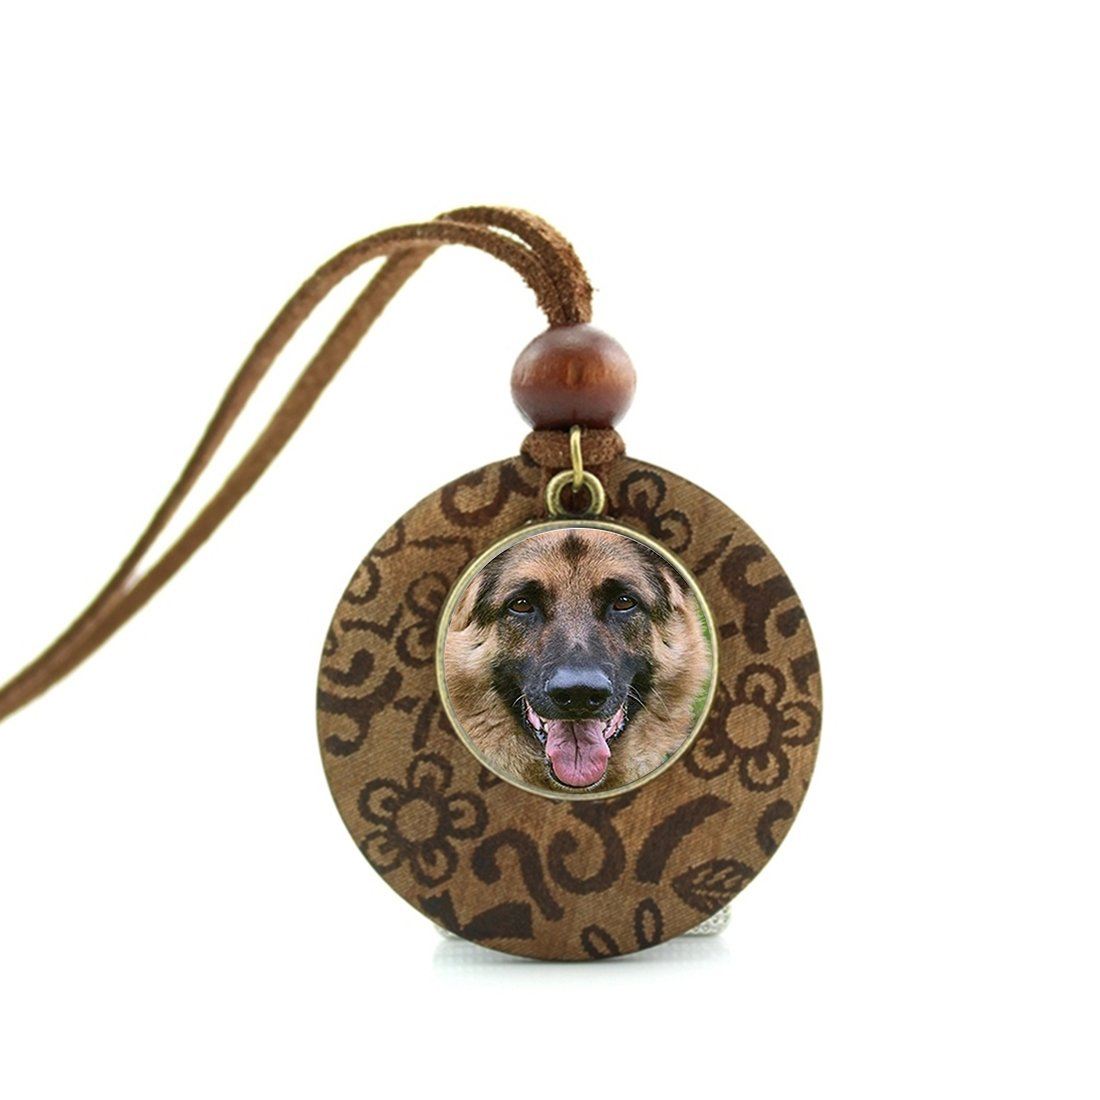 DOME-SPACE Pendant Necklace Retro Vintage Style German Shepherd Jewelry Glass Cabochon Lover Pendant Jewelry Silver